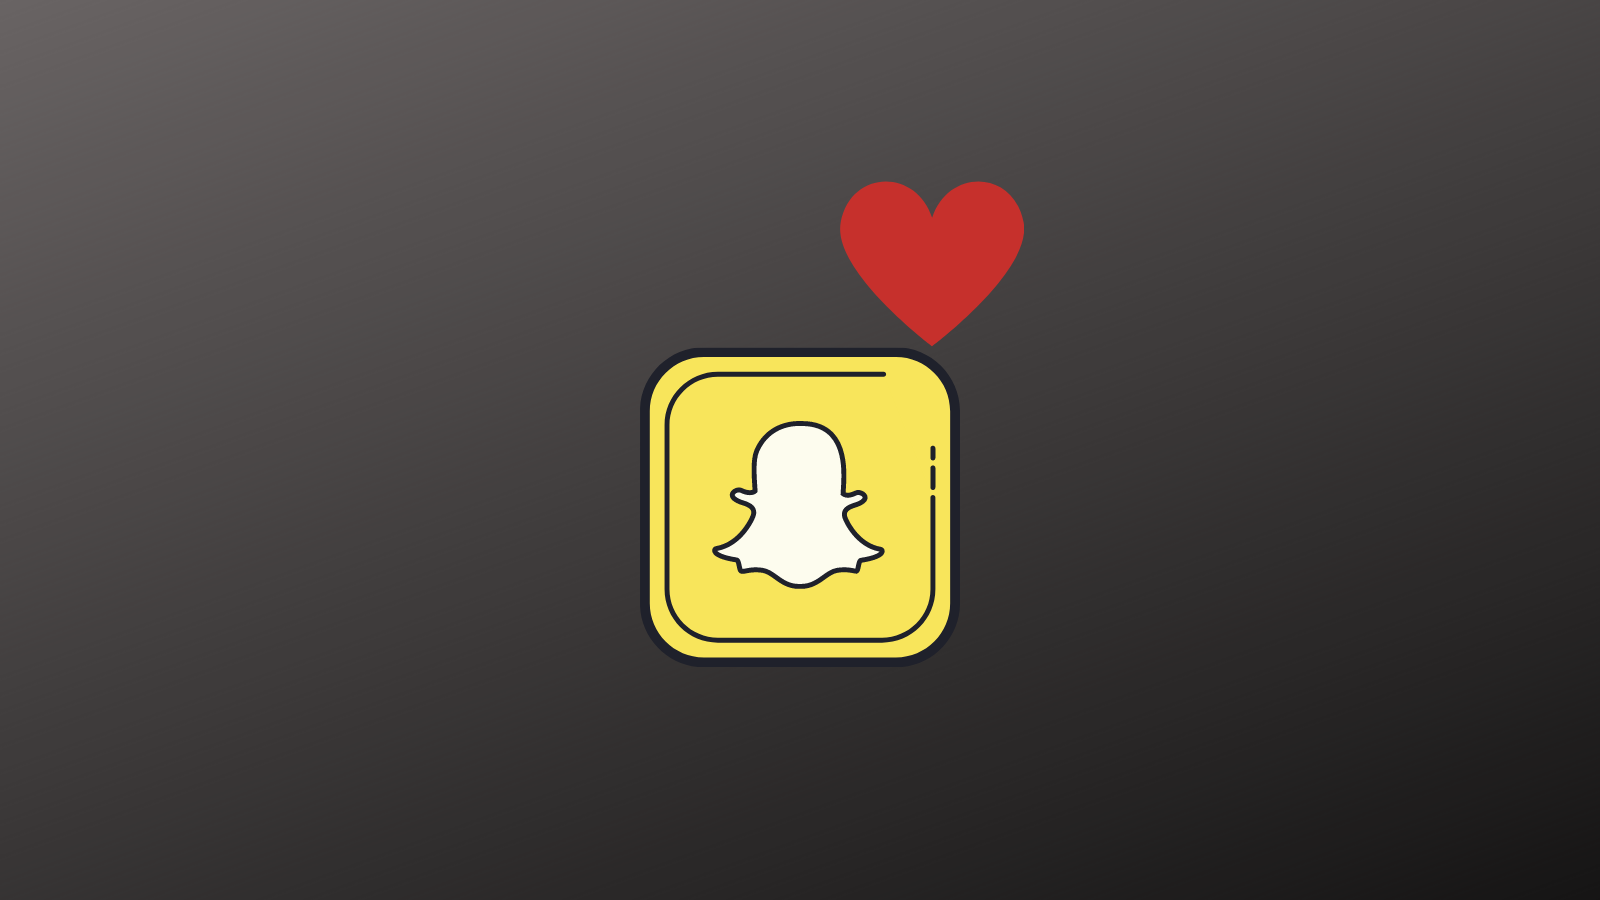 What Does A Heart Next To A Name On Snapchat Mean?